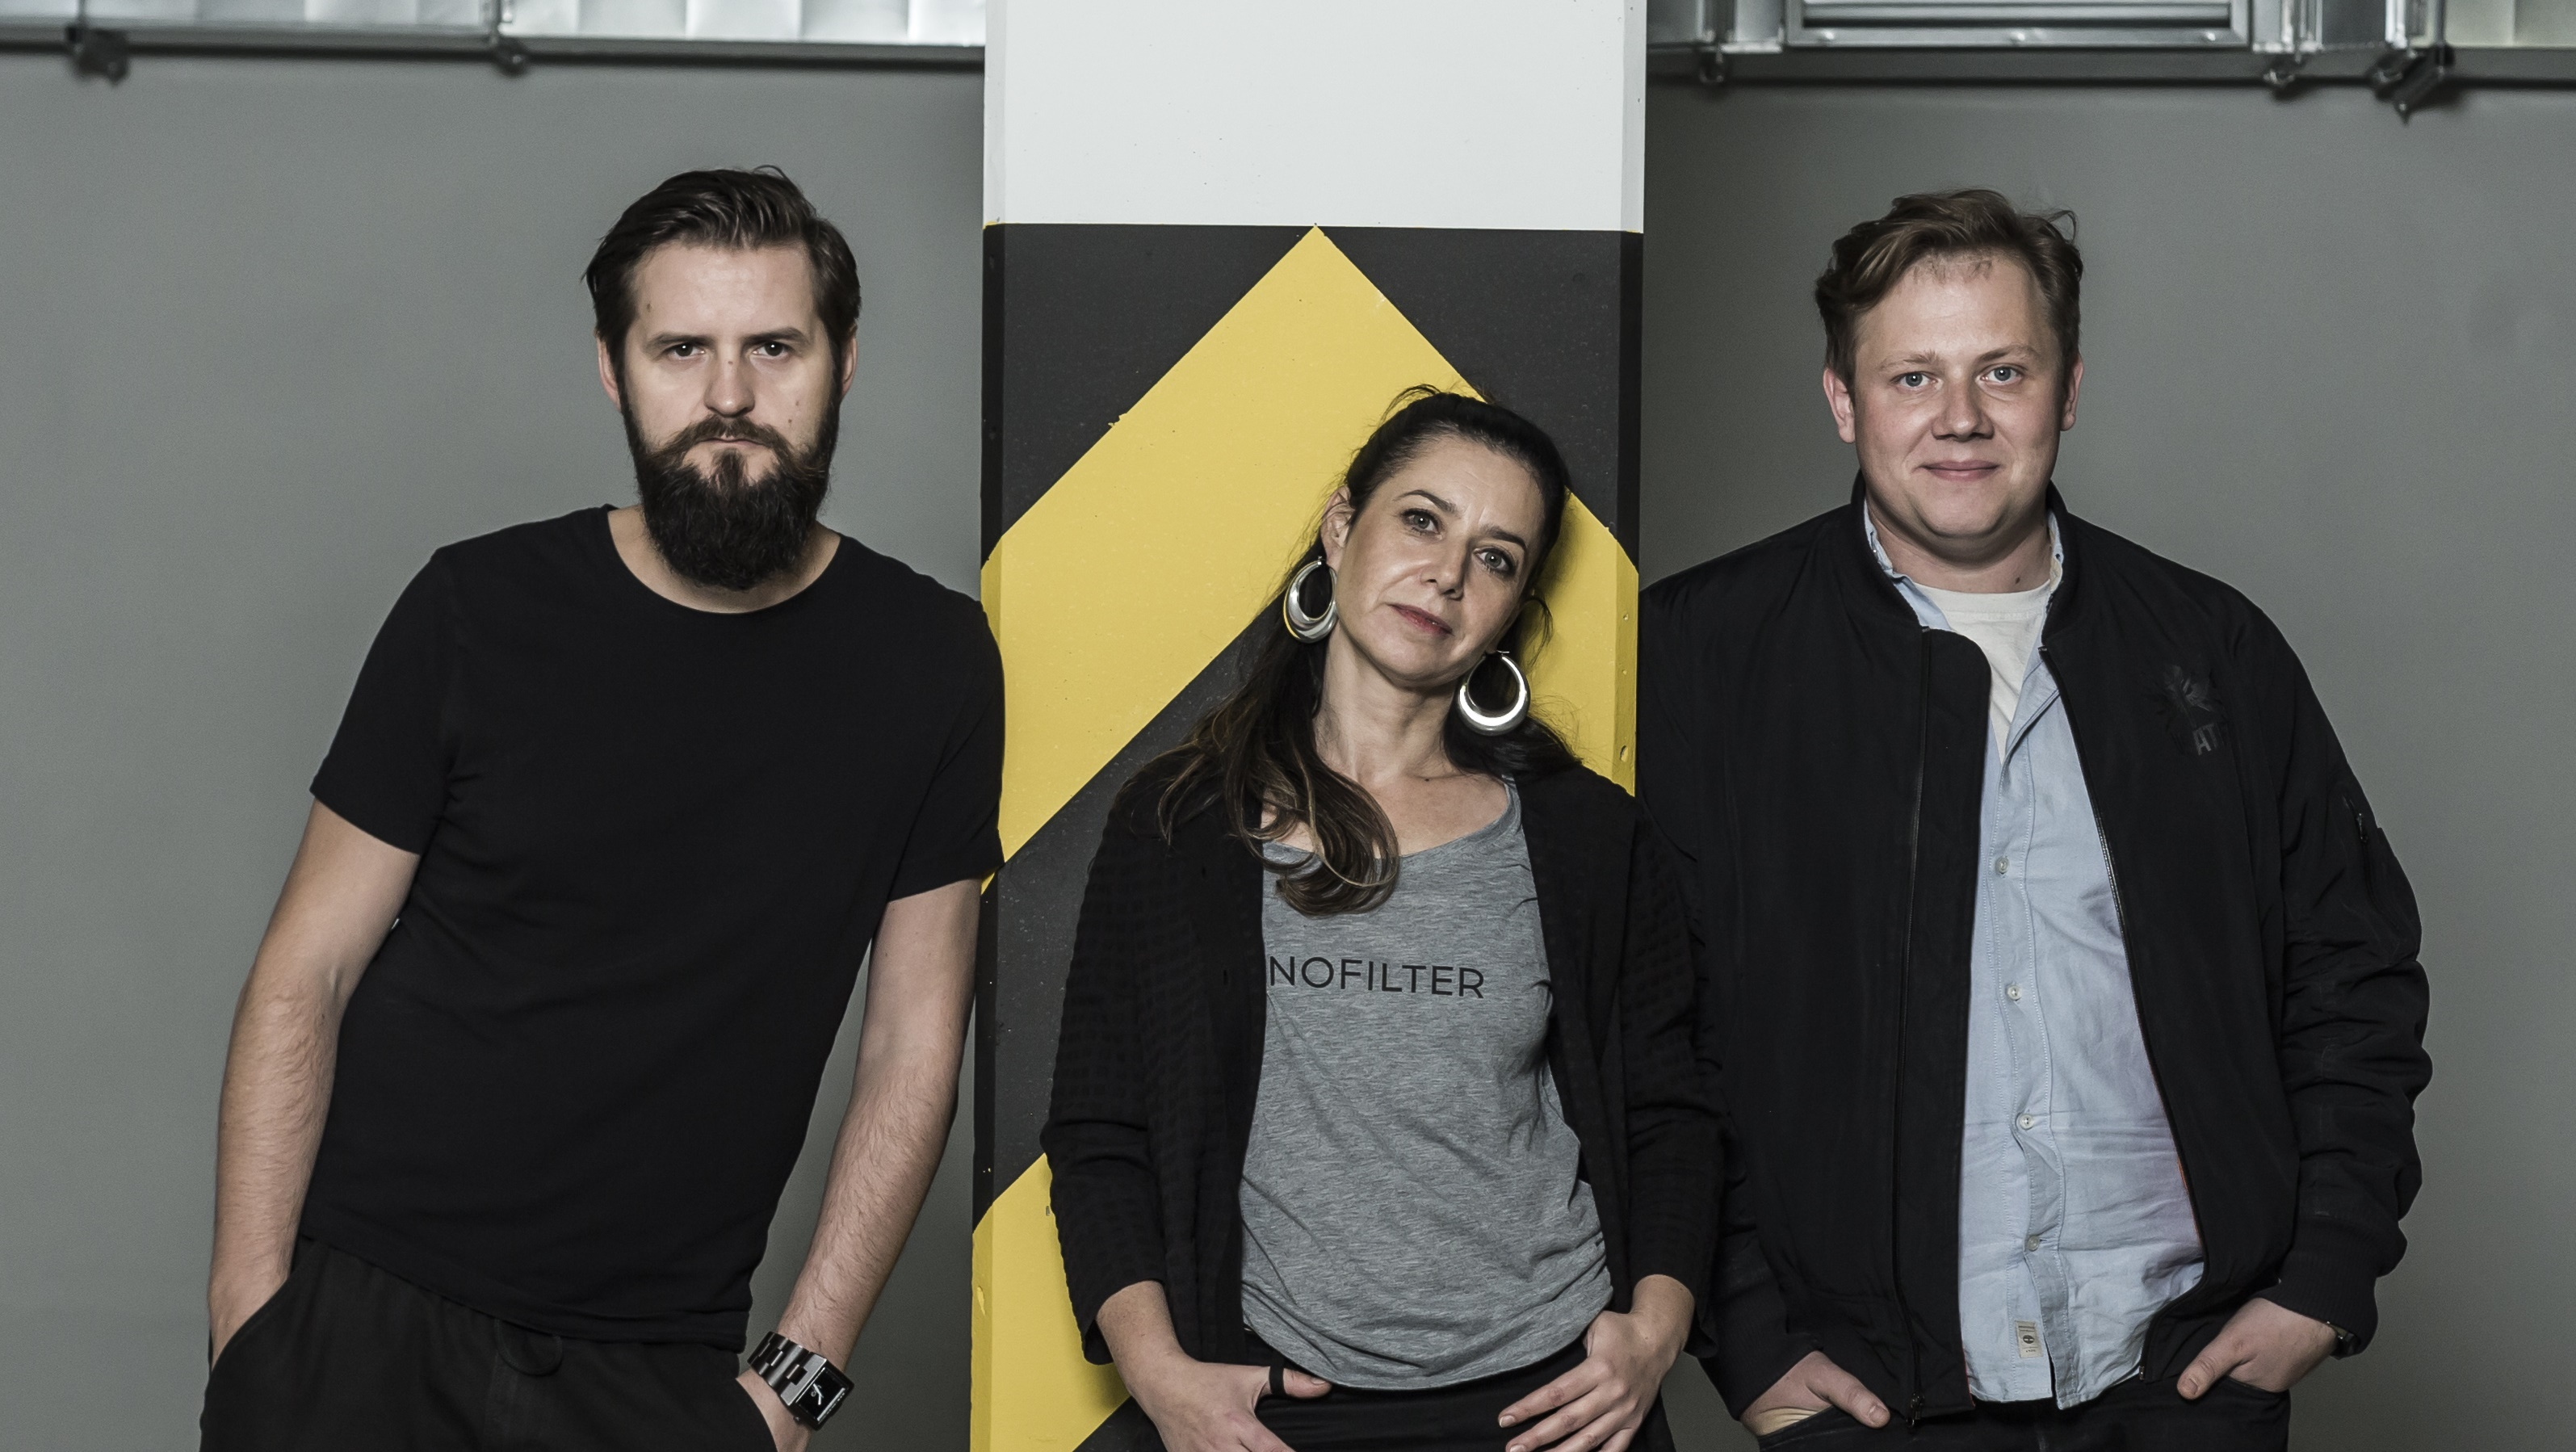 Joanna Biernacka, Maciej Kozina and Bart Biały have been promoted to the positions of deputy creative directors at Isobar Polska. Yuri Drabent is leaving the company.